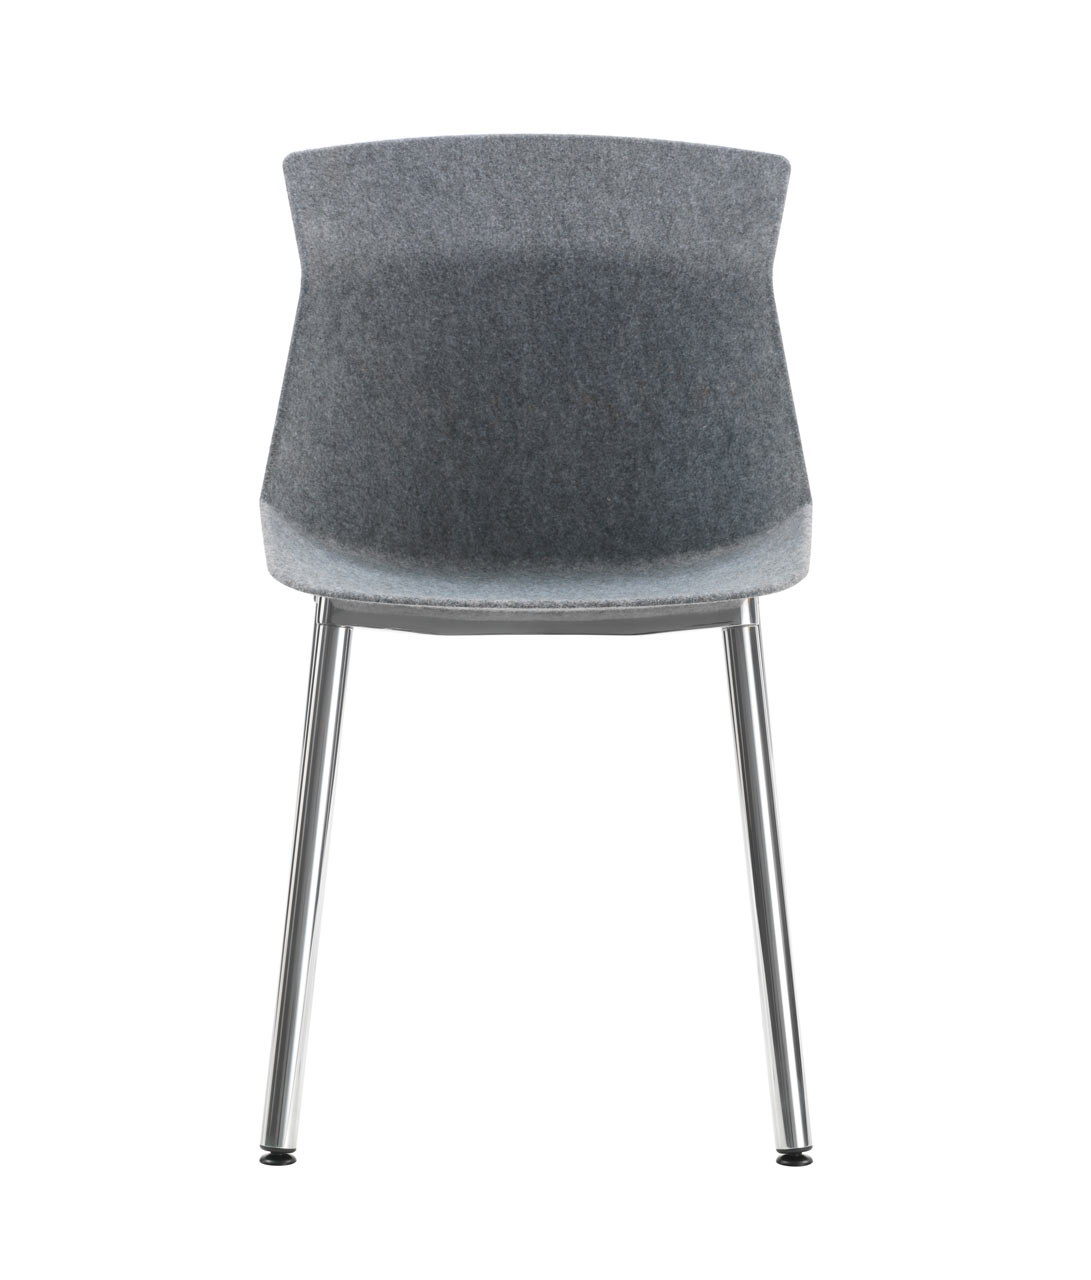 Decon-Motek-Chair-CASSINA-Luca-Nichetto-17